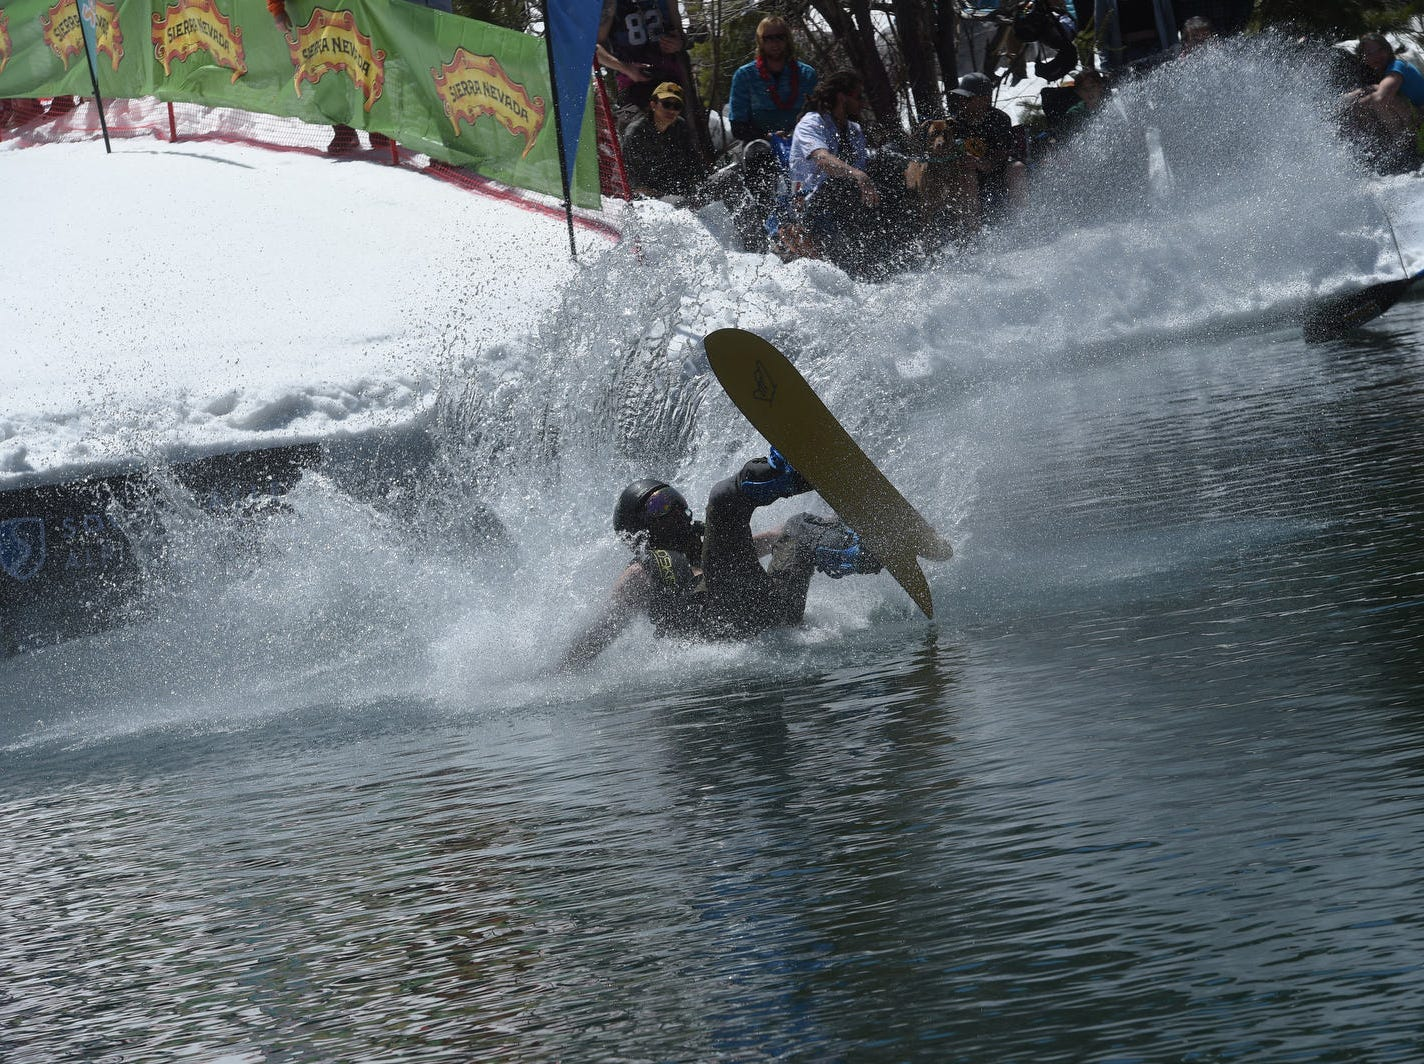 The Cushing Crossing pond skimming event at Squaw Valley on May 4, 2019.